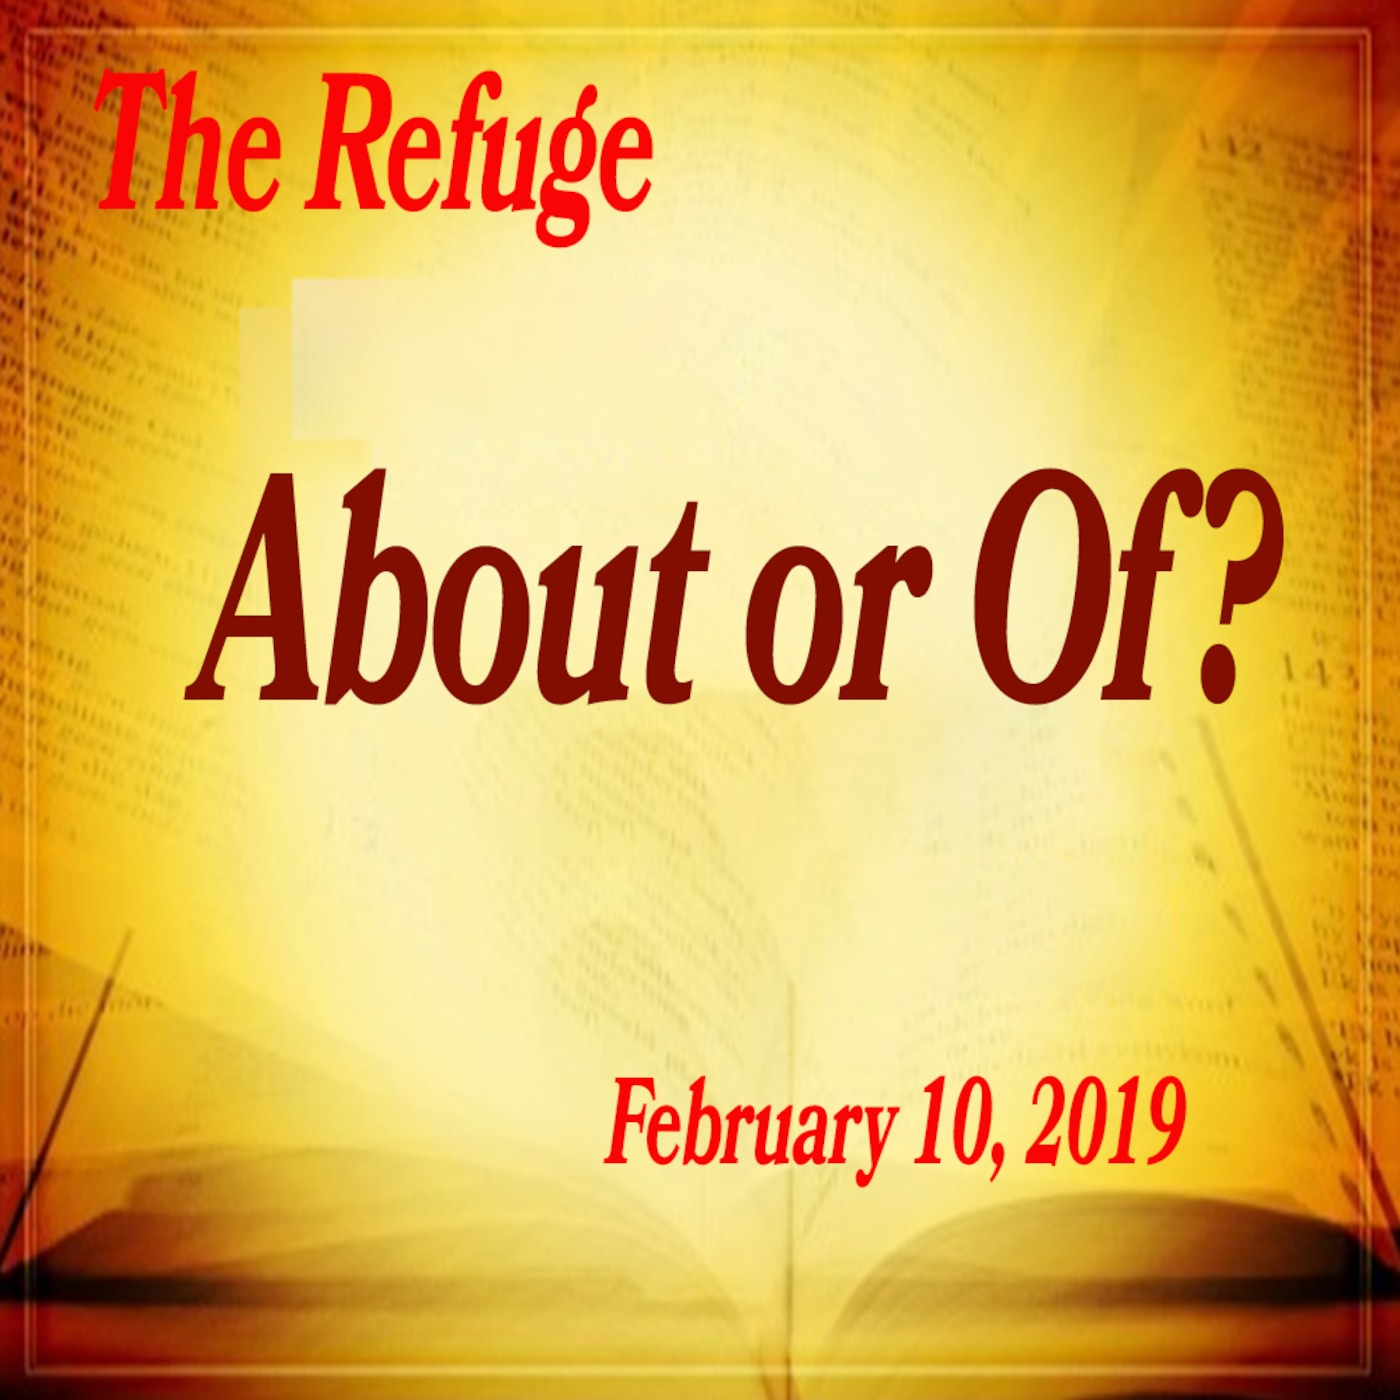 Of Or About? The Refuge Lubbock, TX Sermon podcast